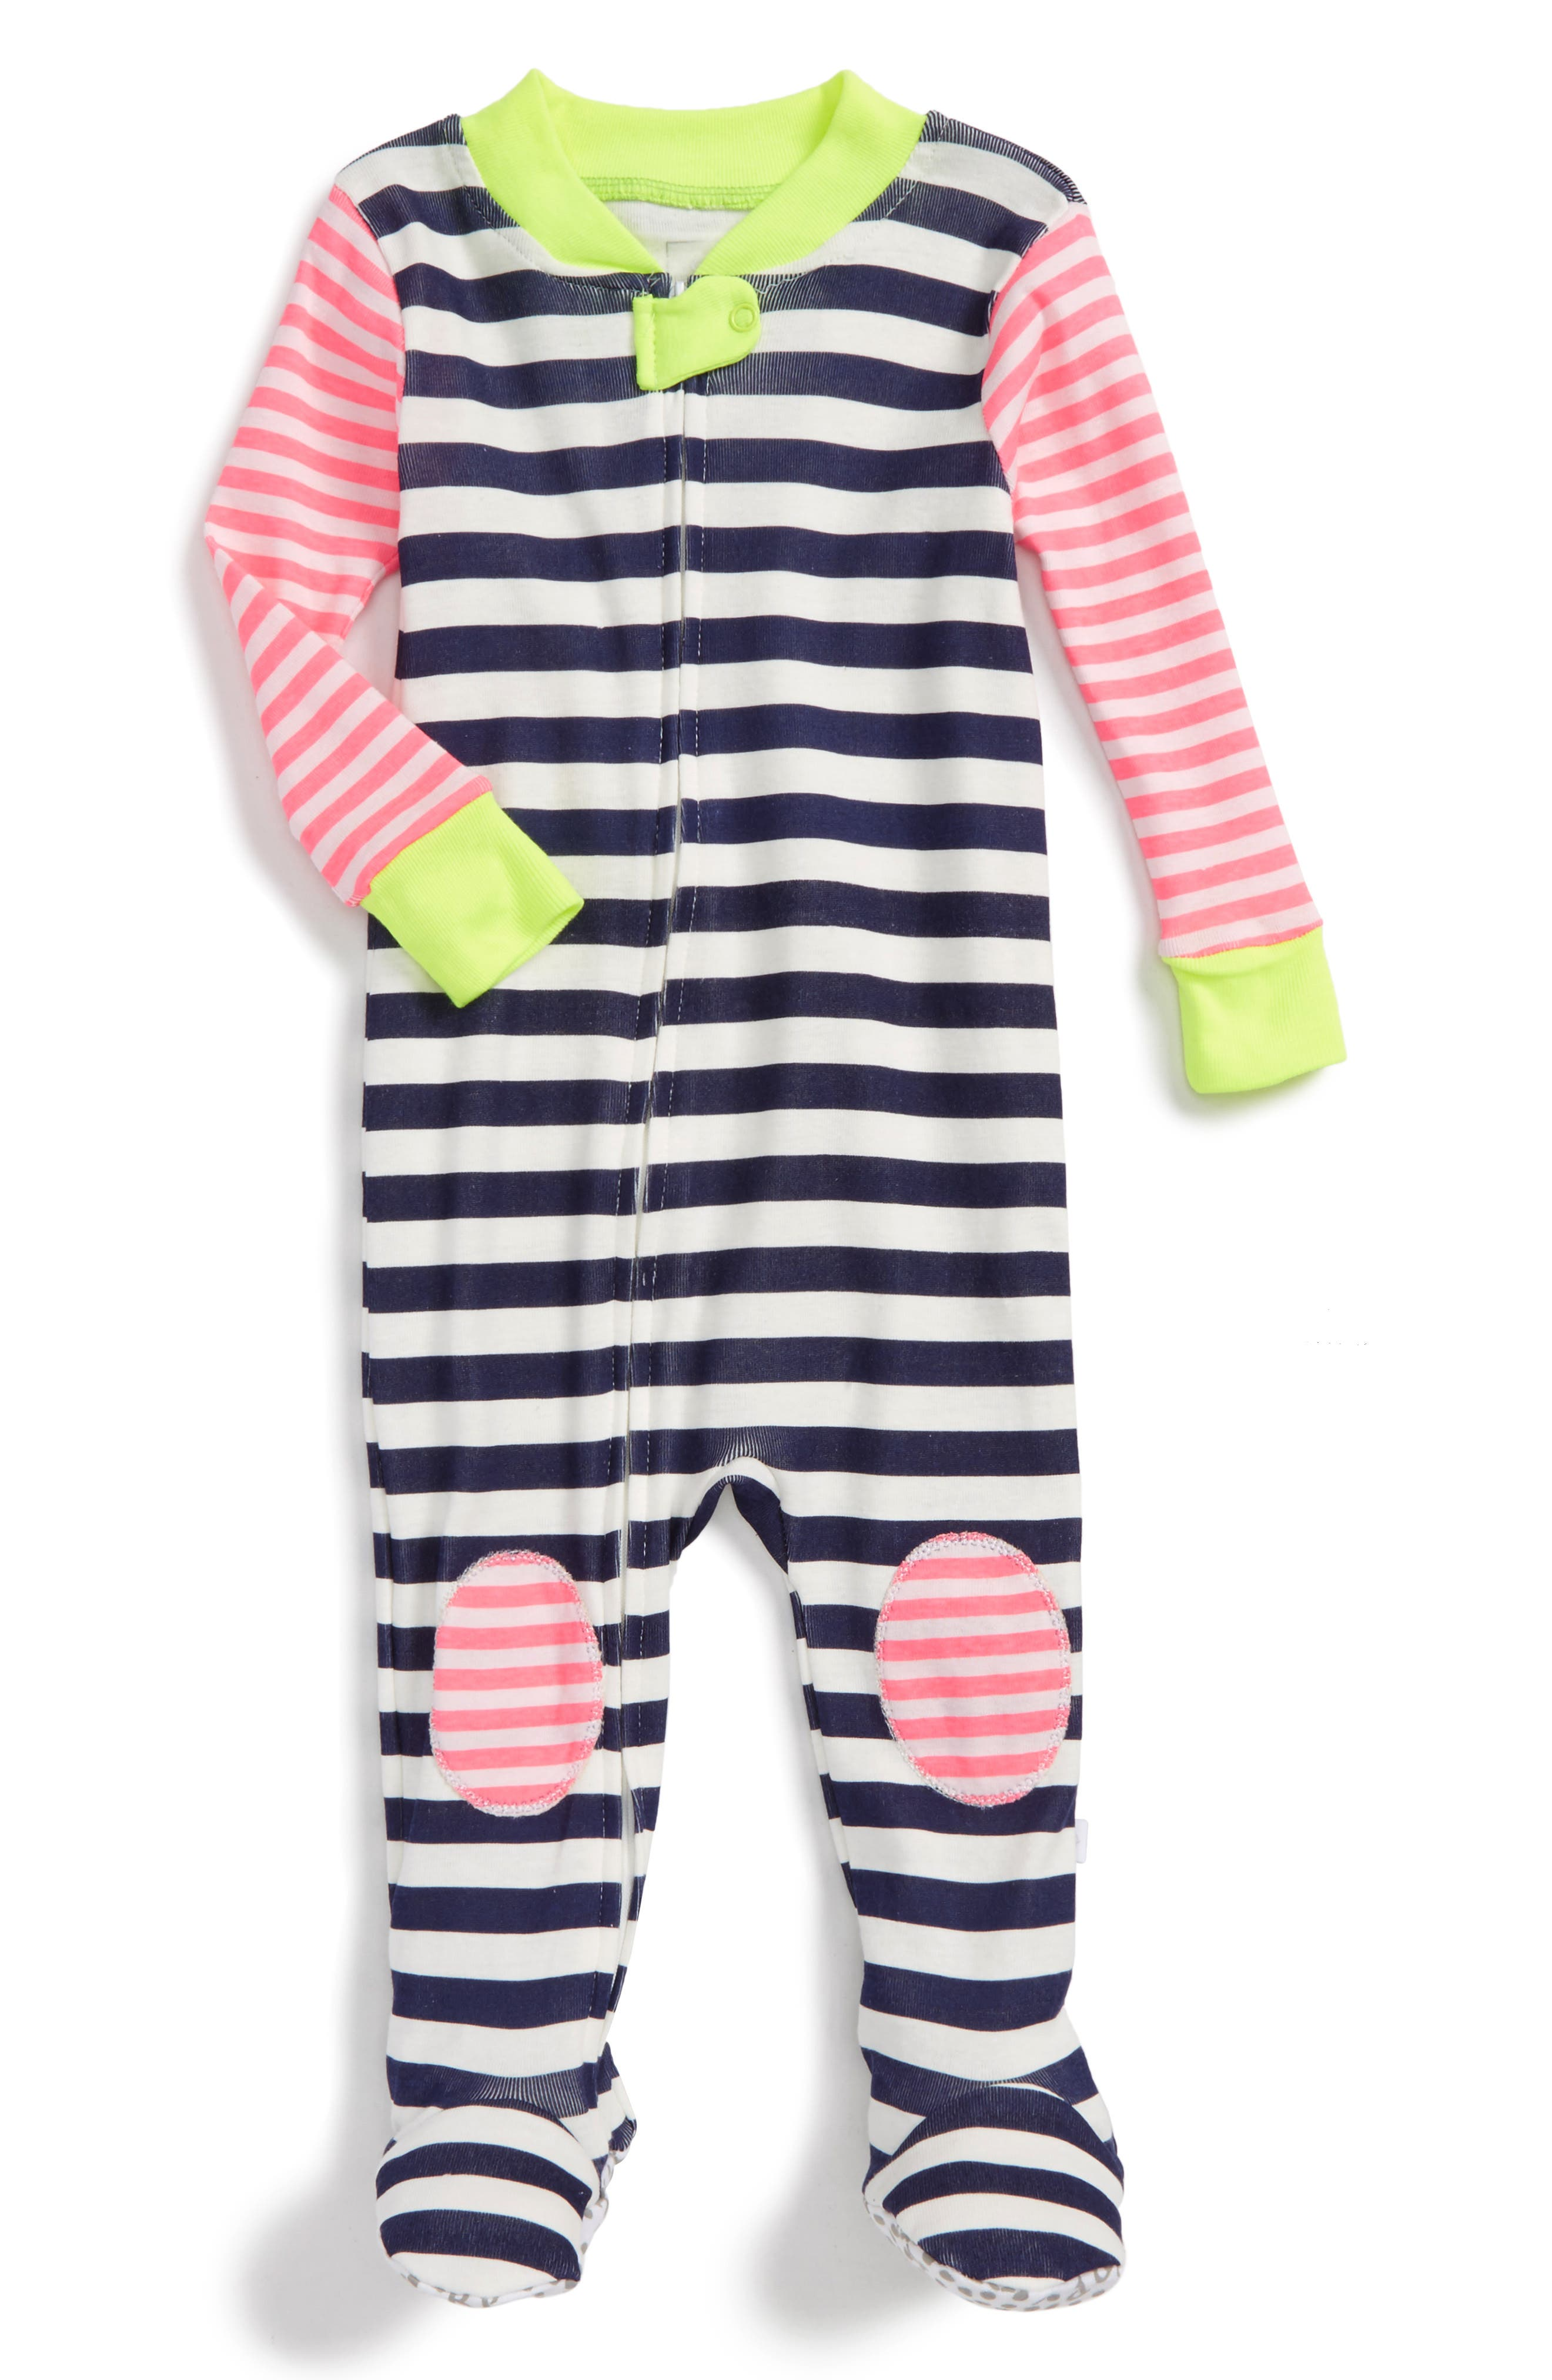 Rosie Pope Fitted One-Piece Footed Pajamas (Baby Girls)